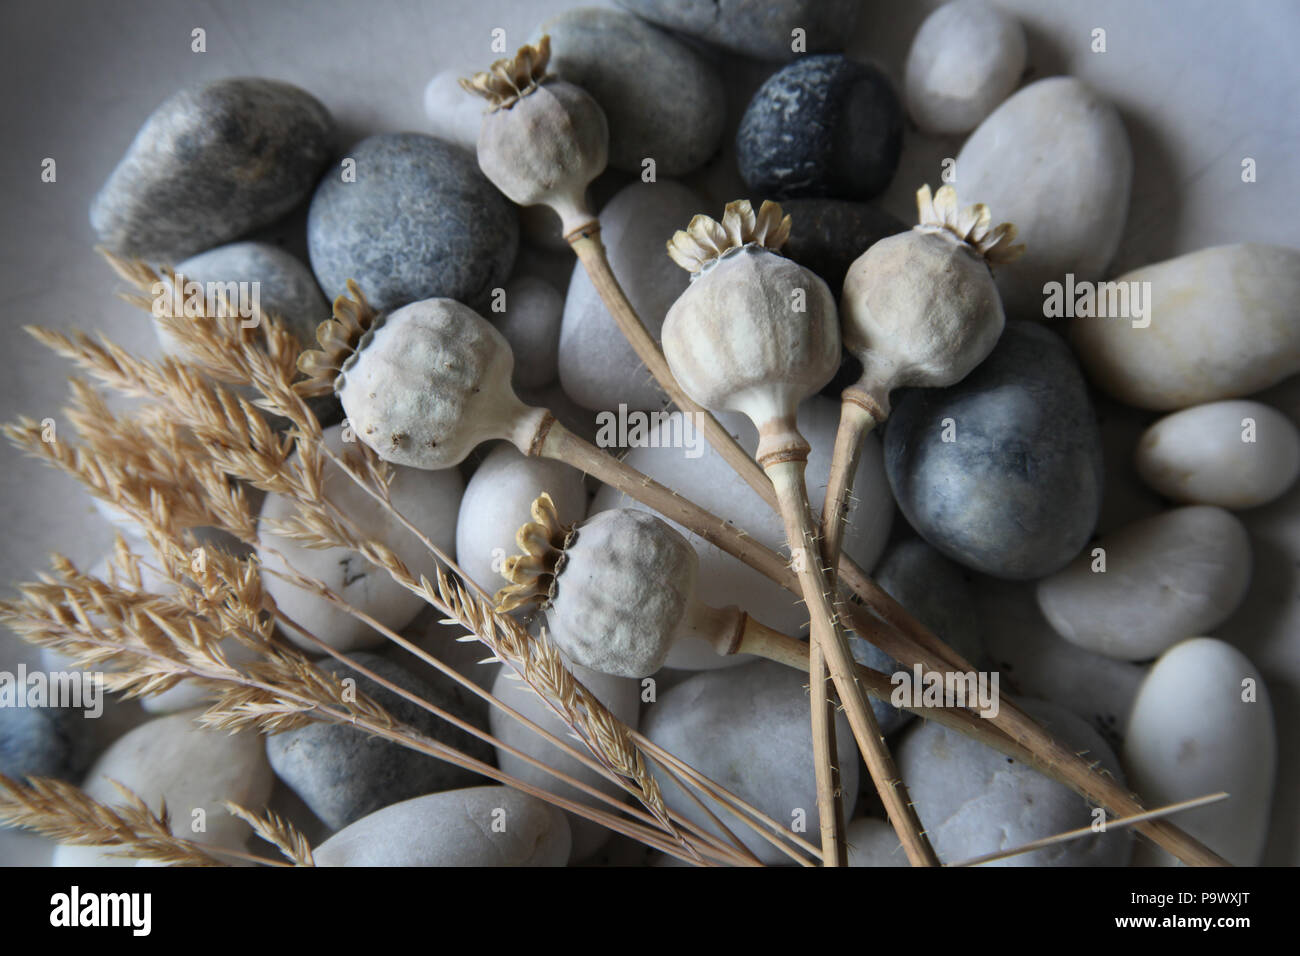 Grass seeds, blue grey and white sea pebbles and poppy heads. - Stock Image